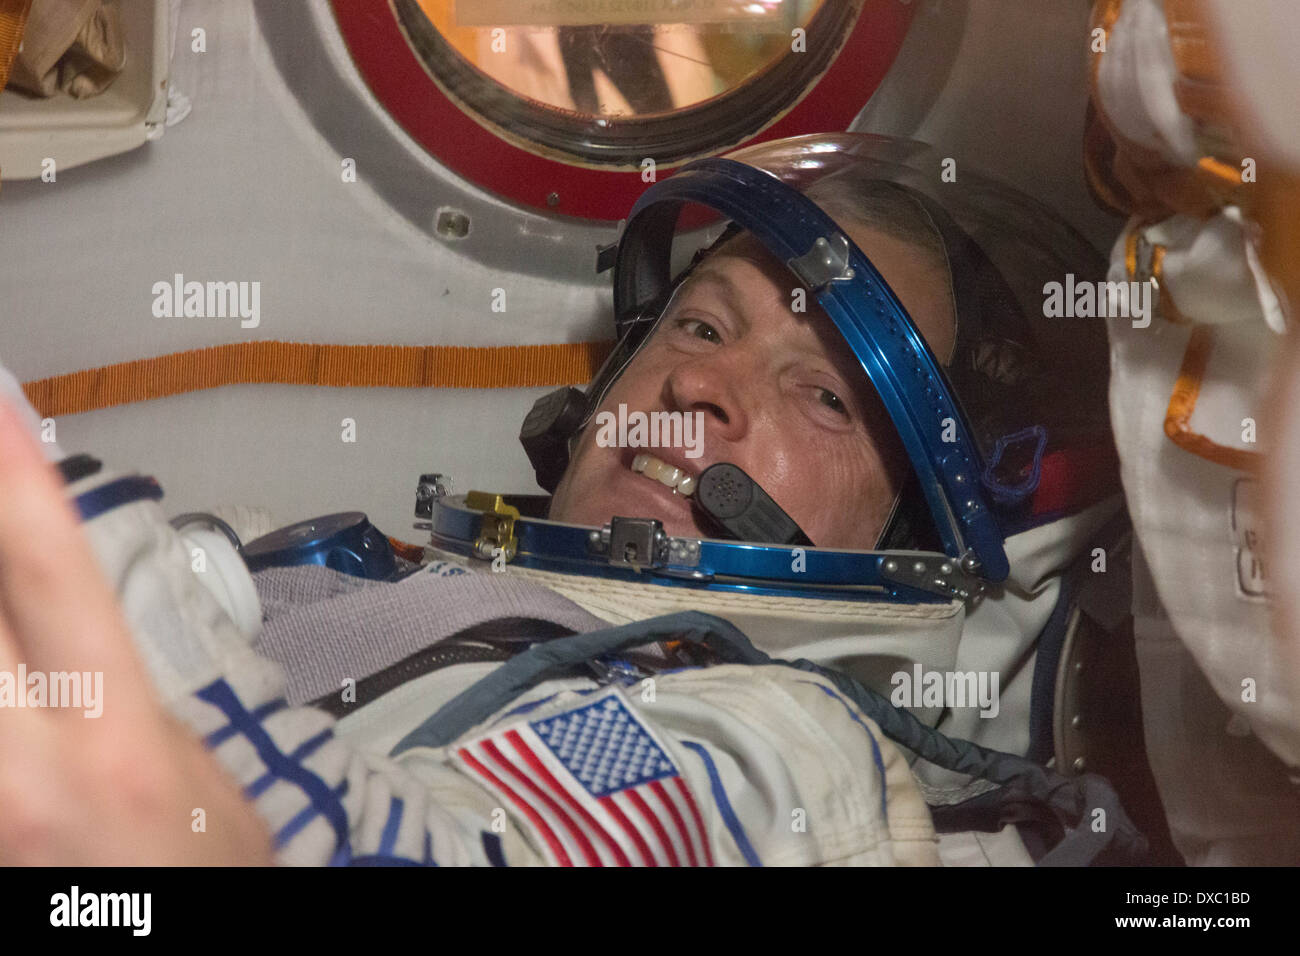 International Space Station expedition 39 crew member astronaut Steve Swanson of NASA in the Soyuz TMA-12M spacecraft during final training at the Integration Facility at the Baikonur Cosmodrome March 14, 2014 in Baikonur Kazakhstan. Launch of the crew is scheduled for March 26 for a six-month mission aboard the International Space Station. - Stock Image